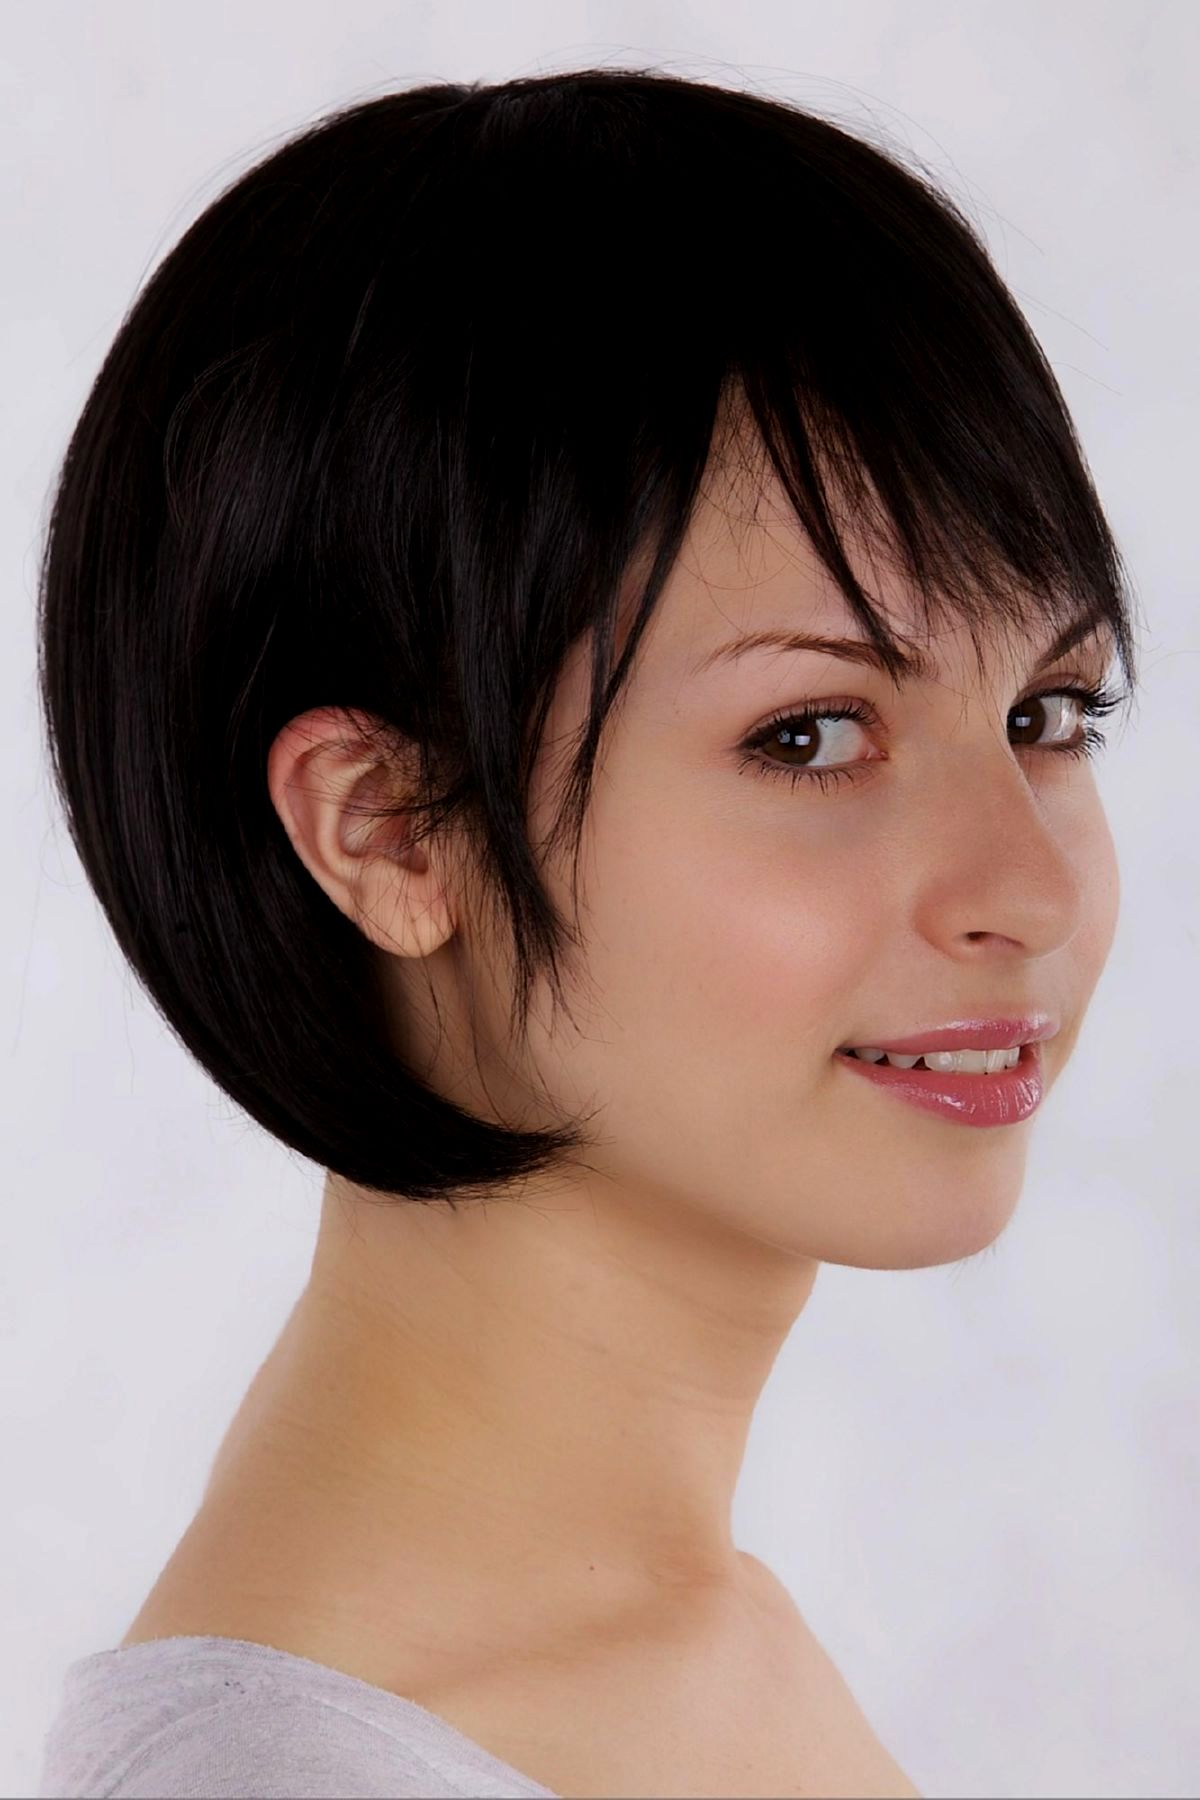 sensational cute hairstyling tips gallery-unique hairstyles tips decor